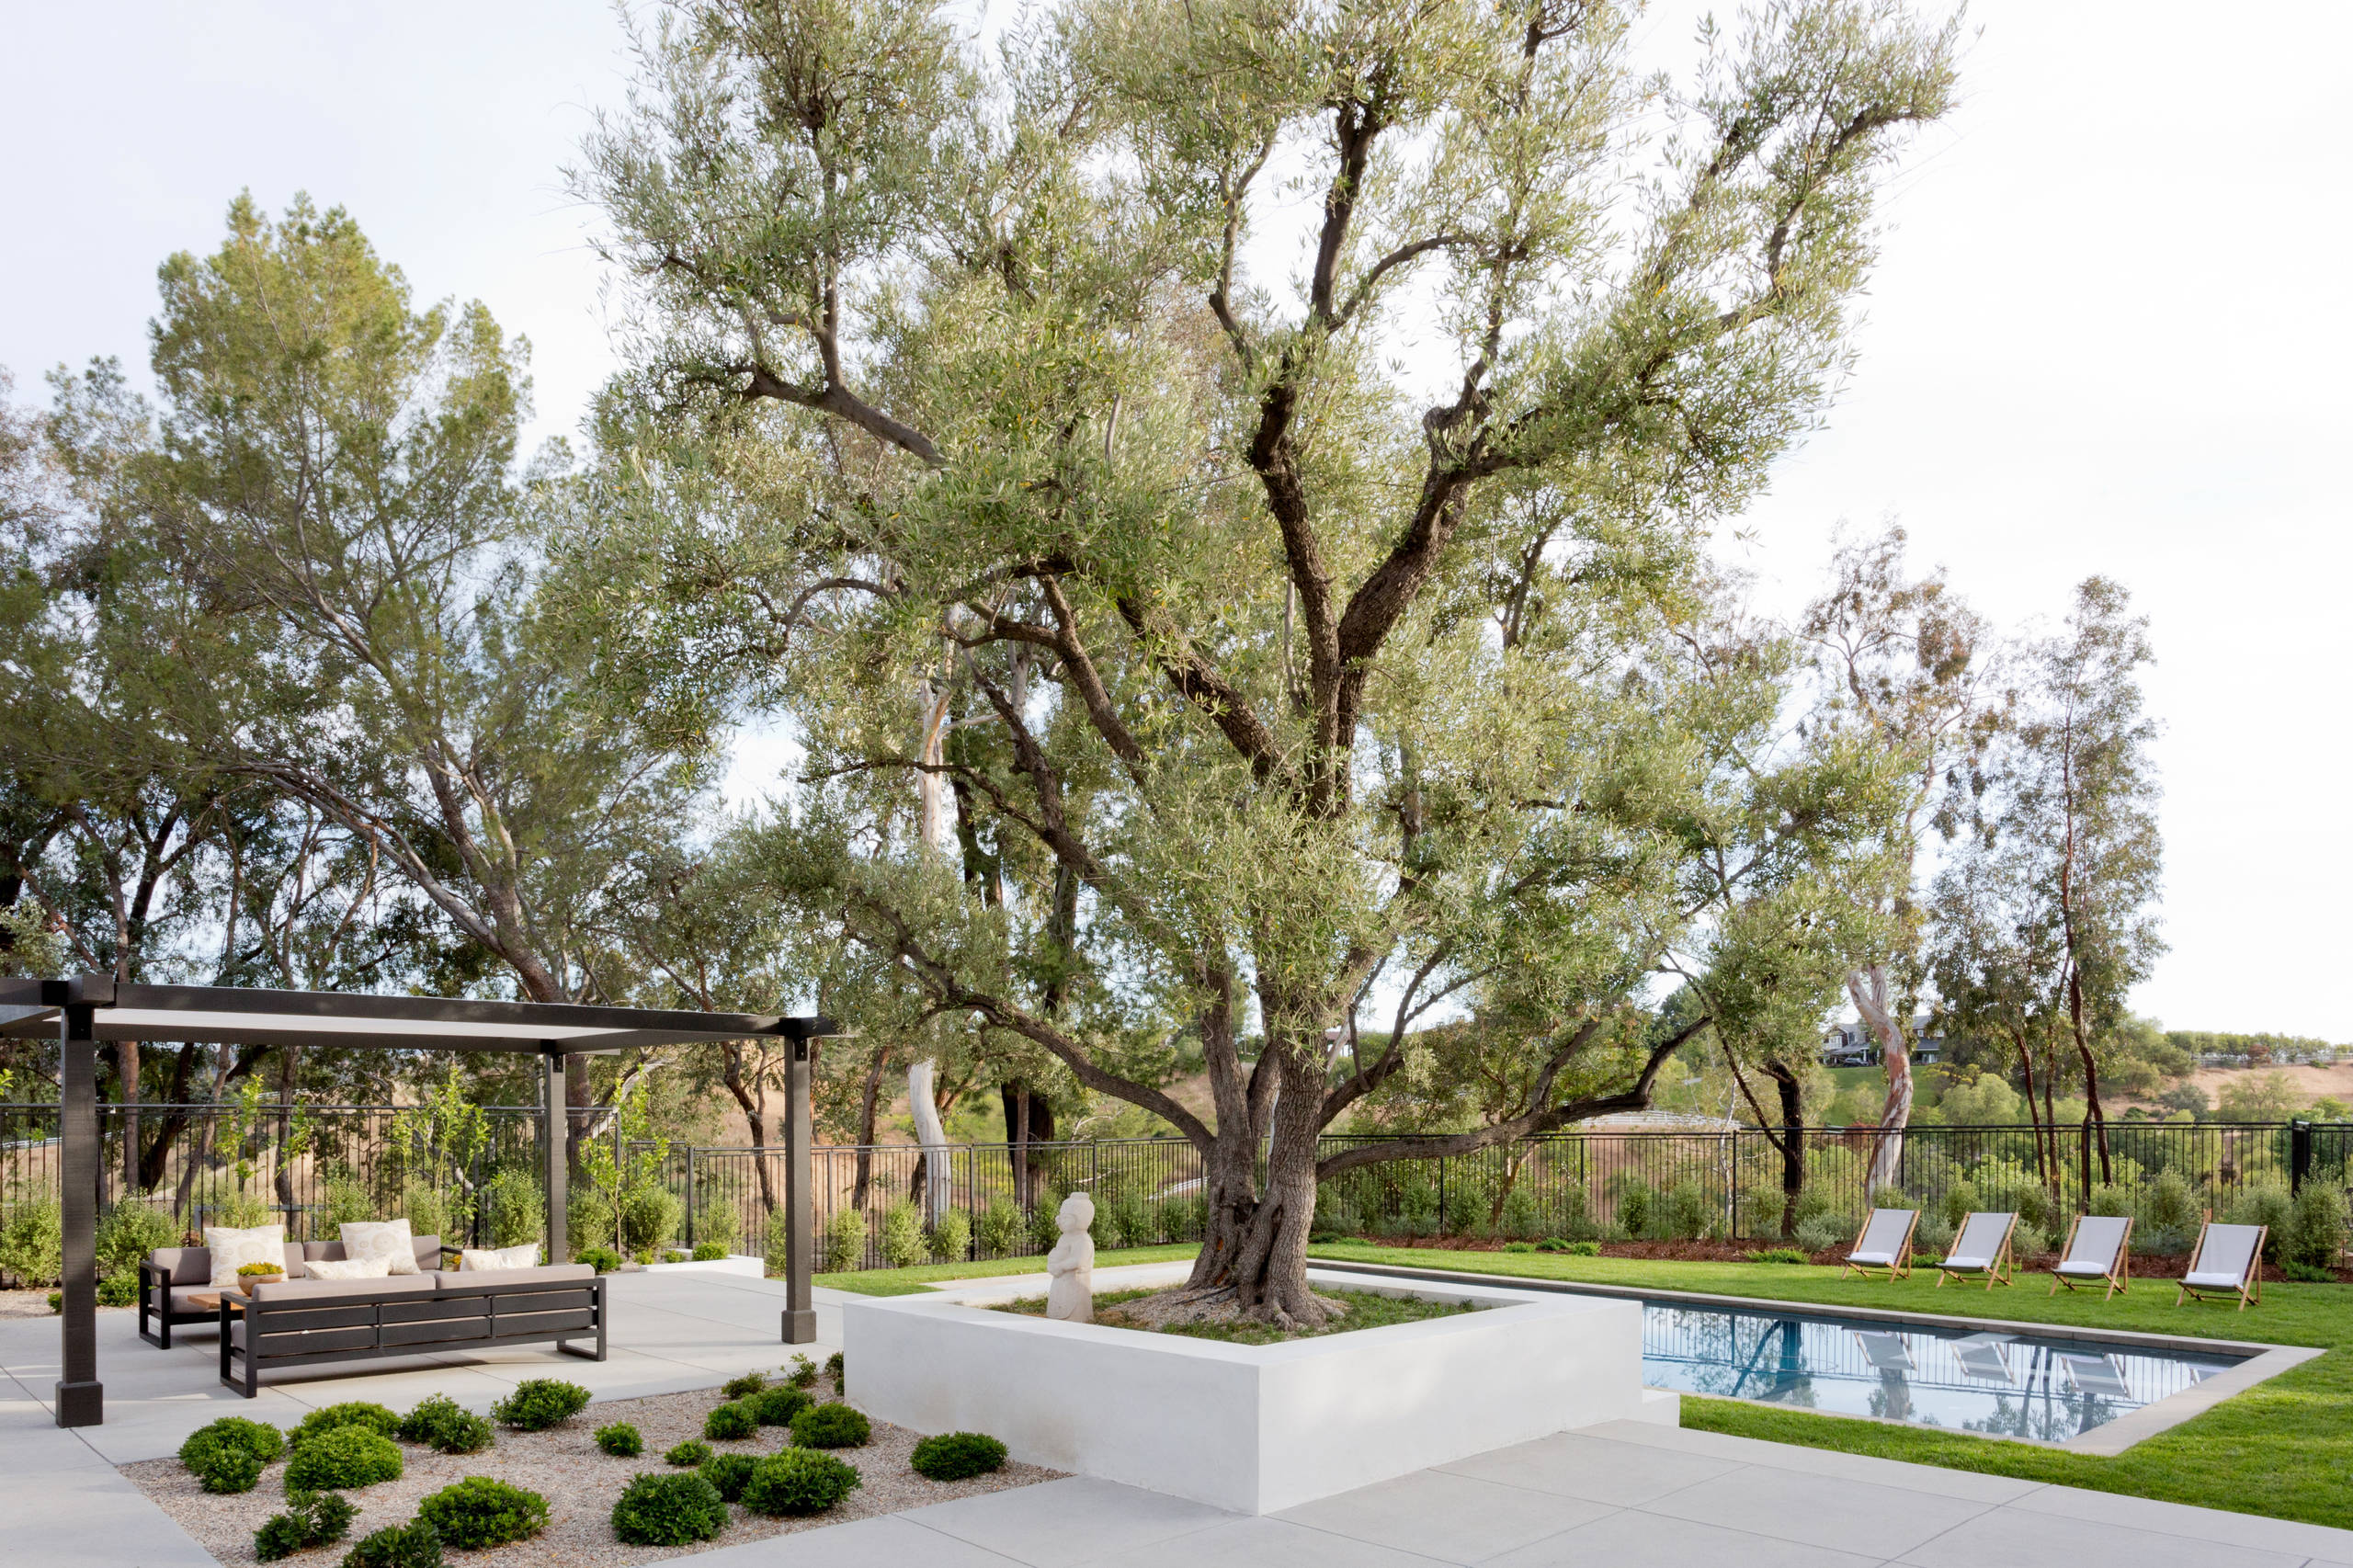 16 Mesmerizing Mid-Century Modern Landscape Designs You Will Adore